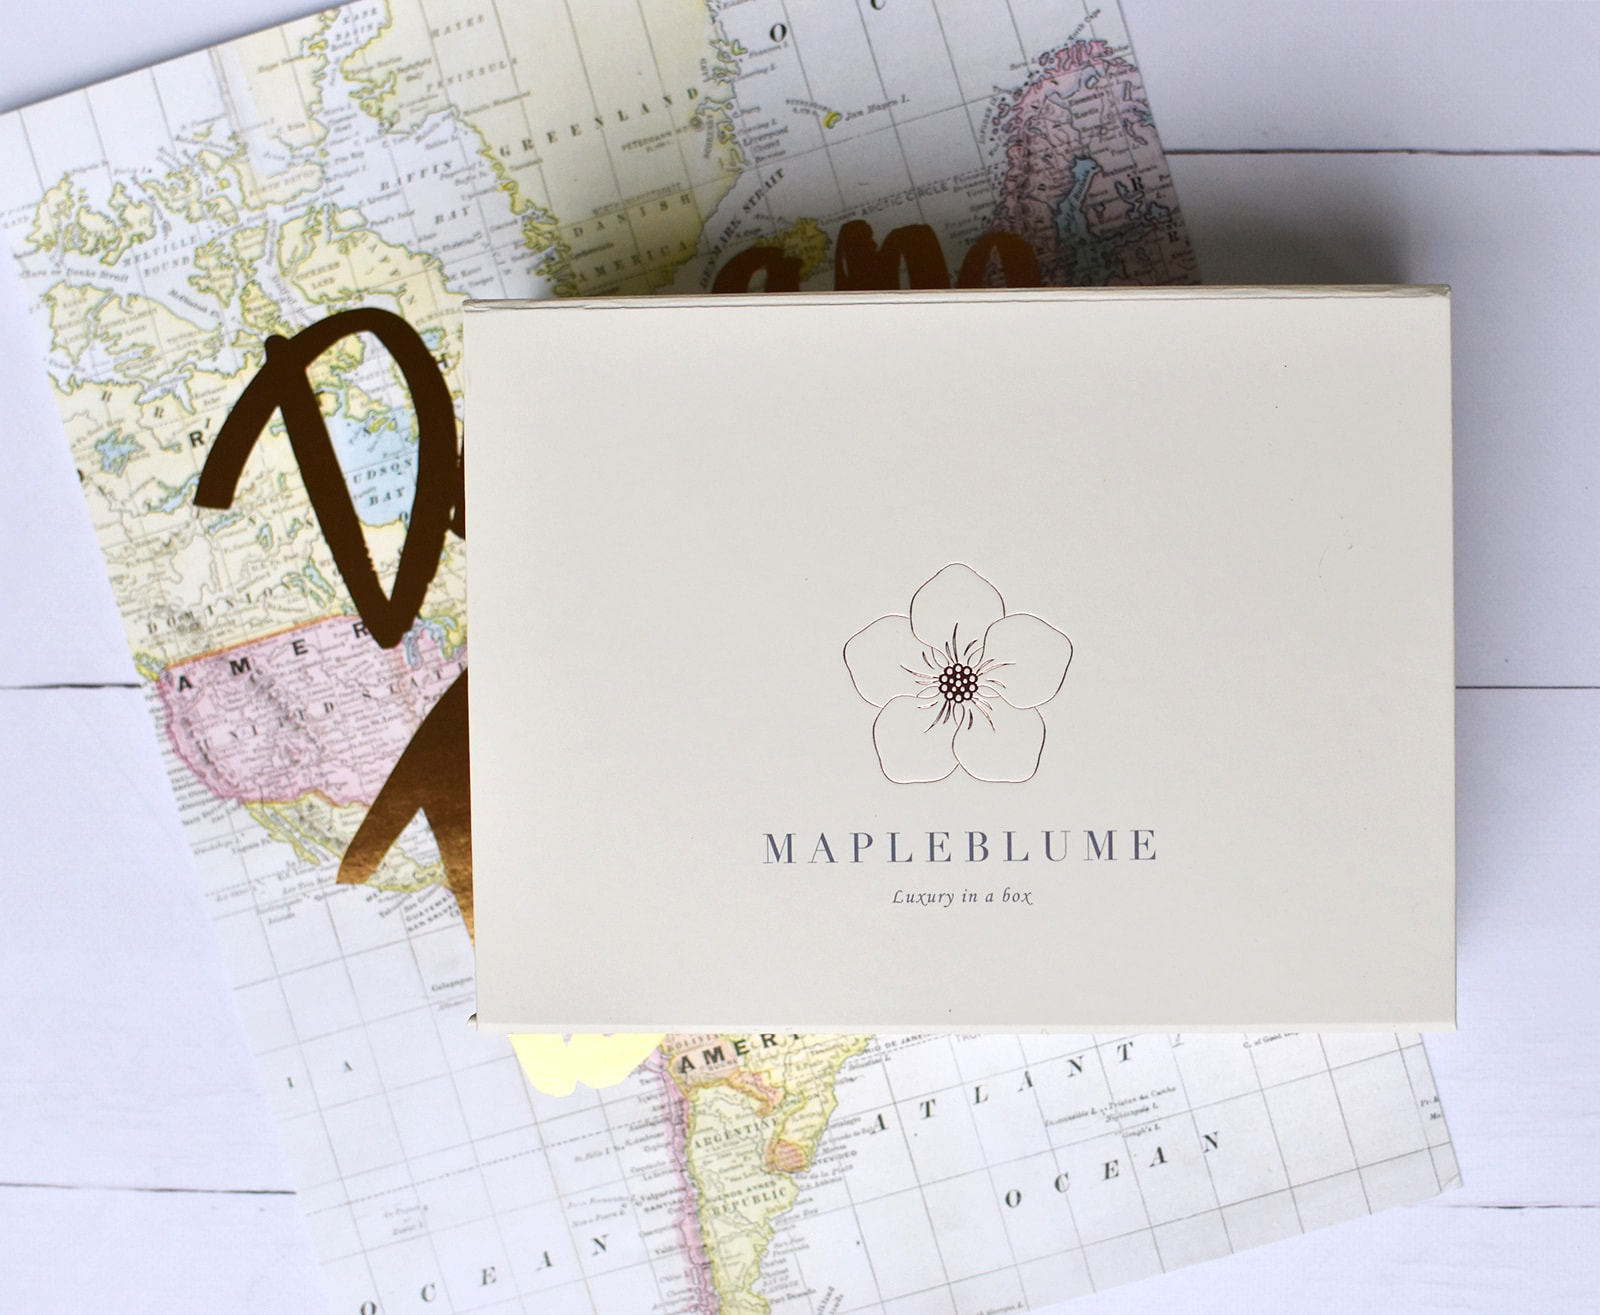 Mapleblume February 2018 review